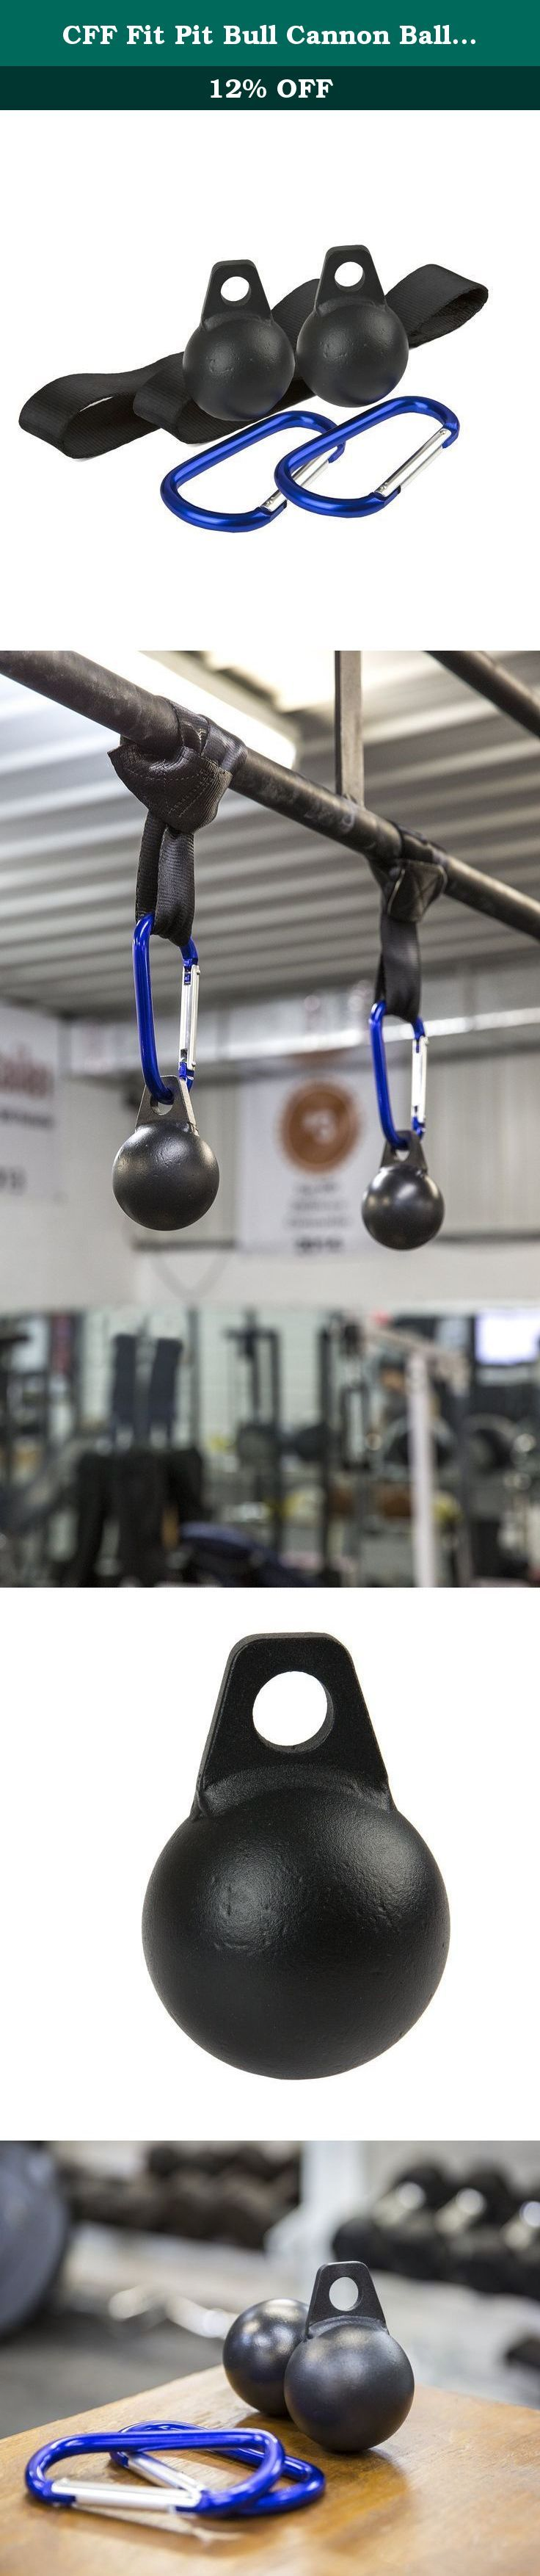 """CFF Fit Pit Bull Cannon Ball Grip Set - Set of 2 - 3"""". Your crush grip is the power between your fingers and your palm. Pinch grip is the power between your fingers and your thumbs. Cannonball grips are a great way to focus on both with one tool. Strengthen your hands, wrists, and forearms with this set of CFF Fit Pit Bull Cannon Ball Grips. Strengthening your crush grip and pinch grip is great for rock climbing, weightlifting, and more. These are important assets for American Ninjas..."""